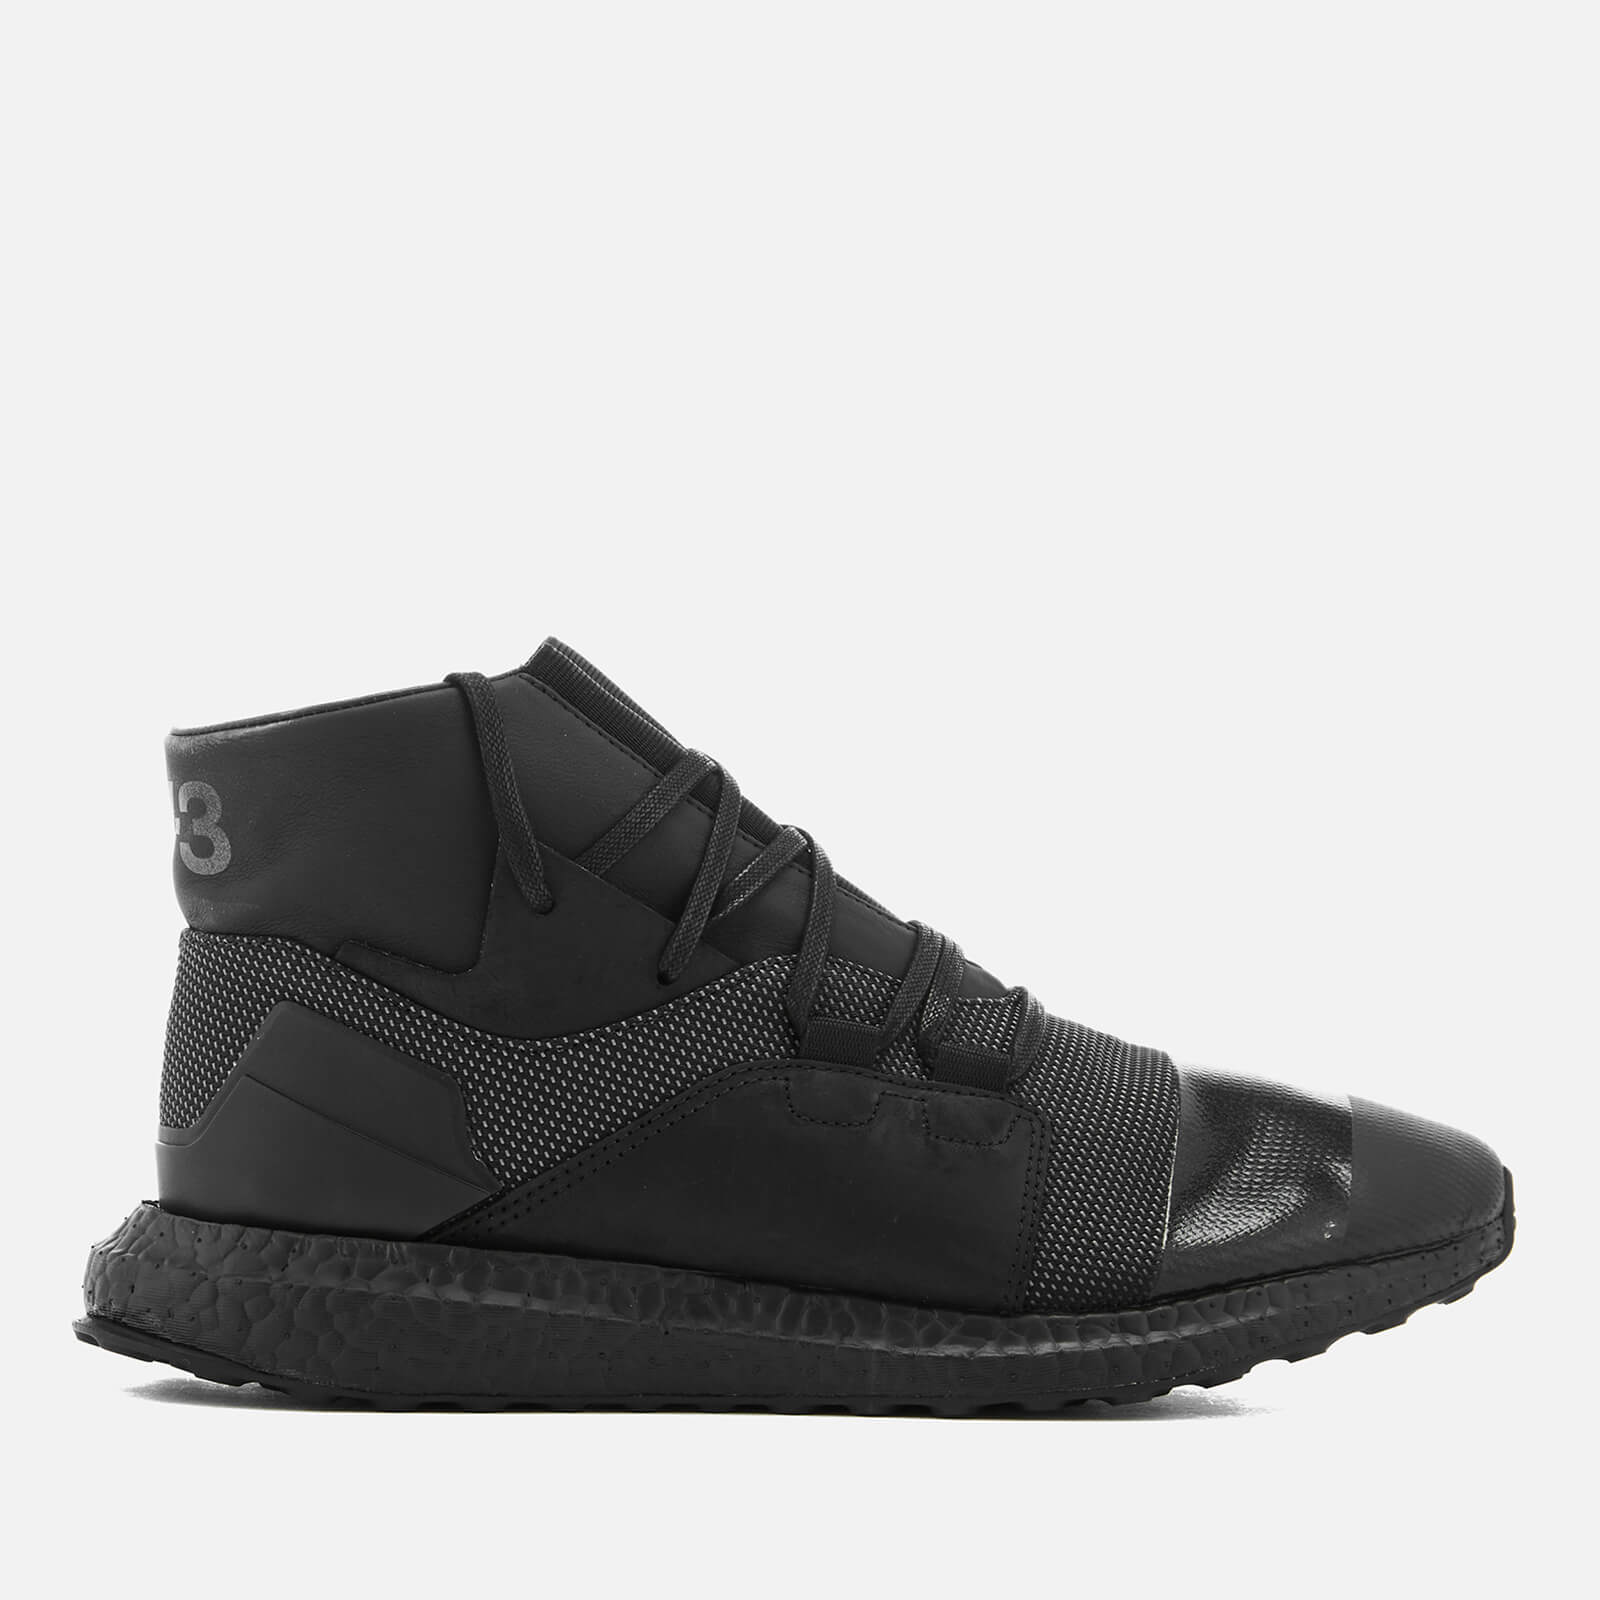 982a5995f Y-3 Men s Kozoko High Sneakers - Core Black Core Black - Free UK Delivery  over £50